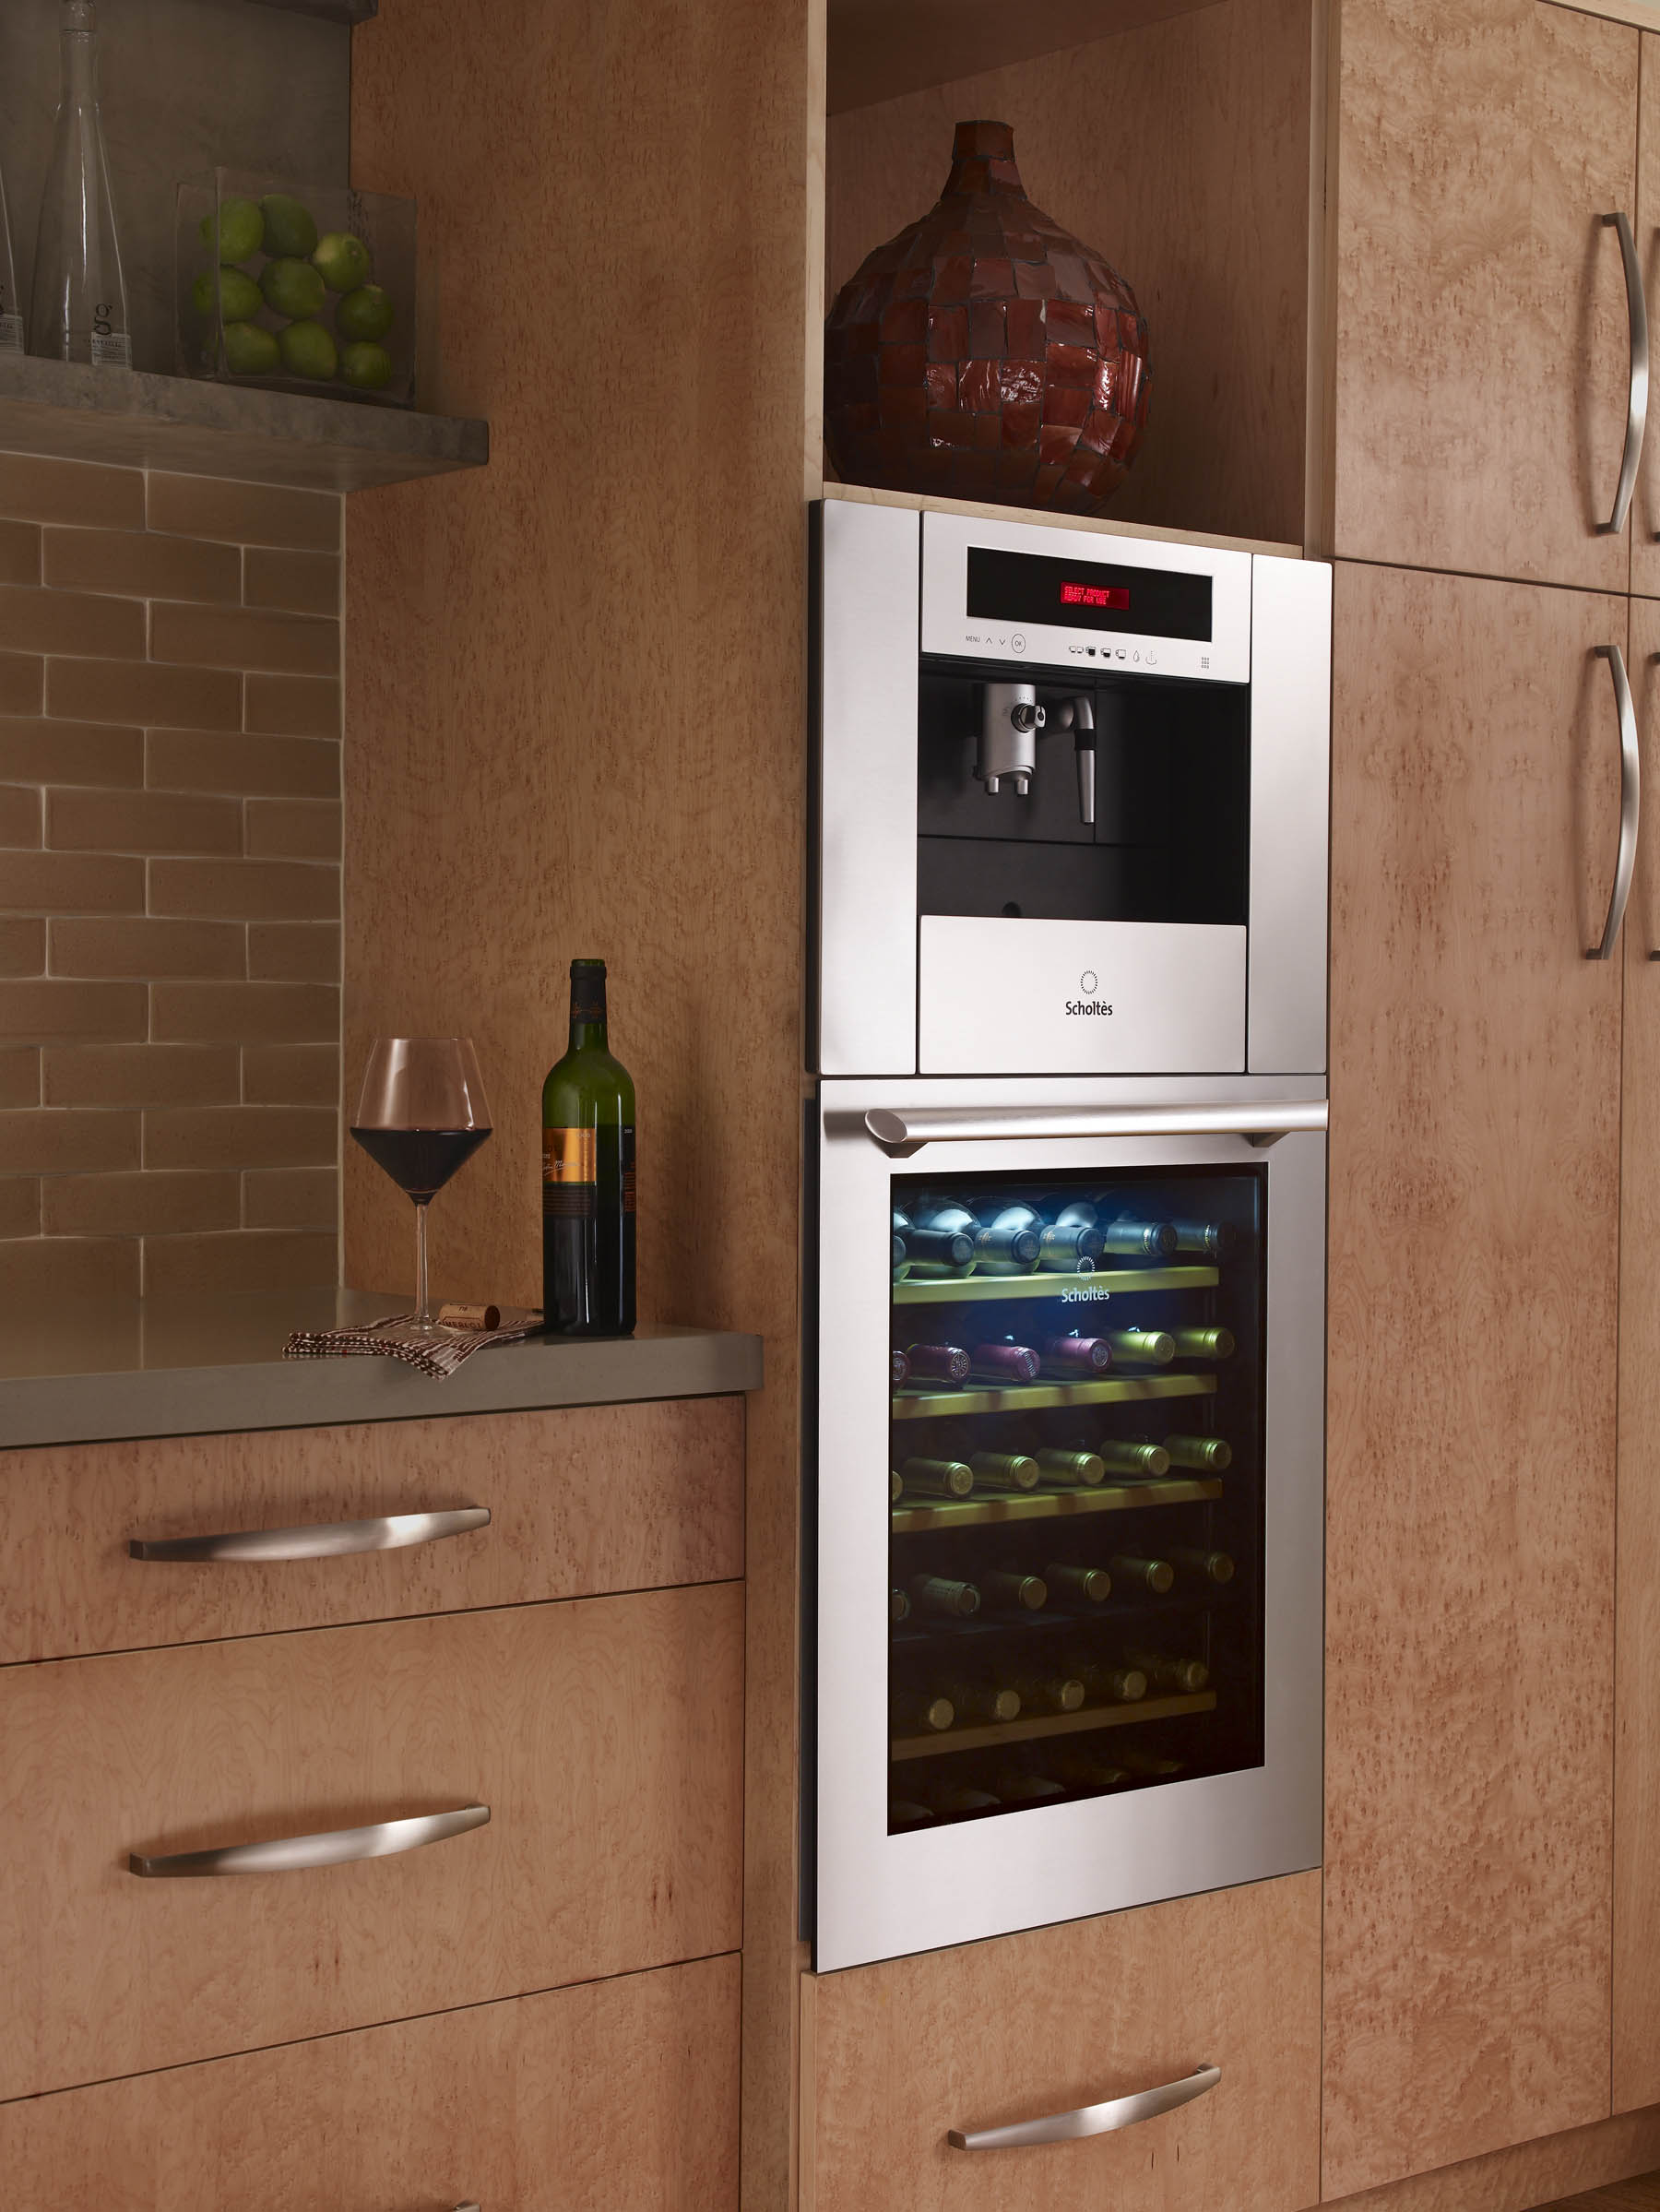 Uncategorized Kitchen Small Appliance Stores kitchen small appliance stores tboots us new appliances 2012